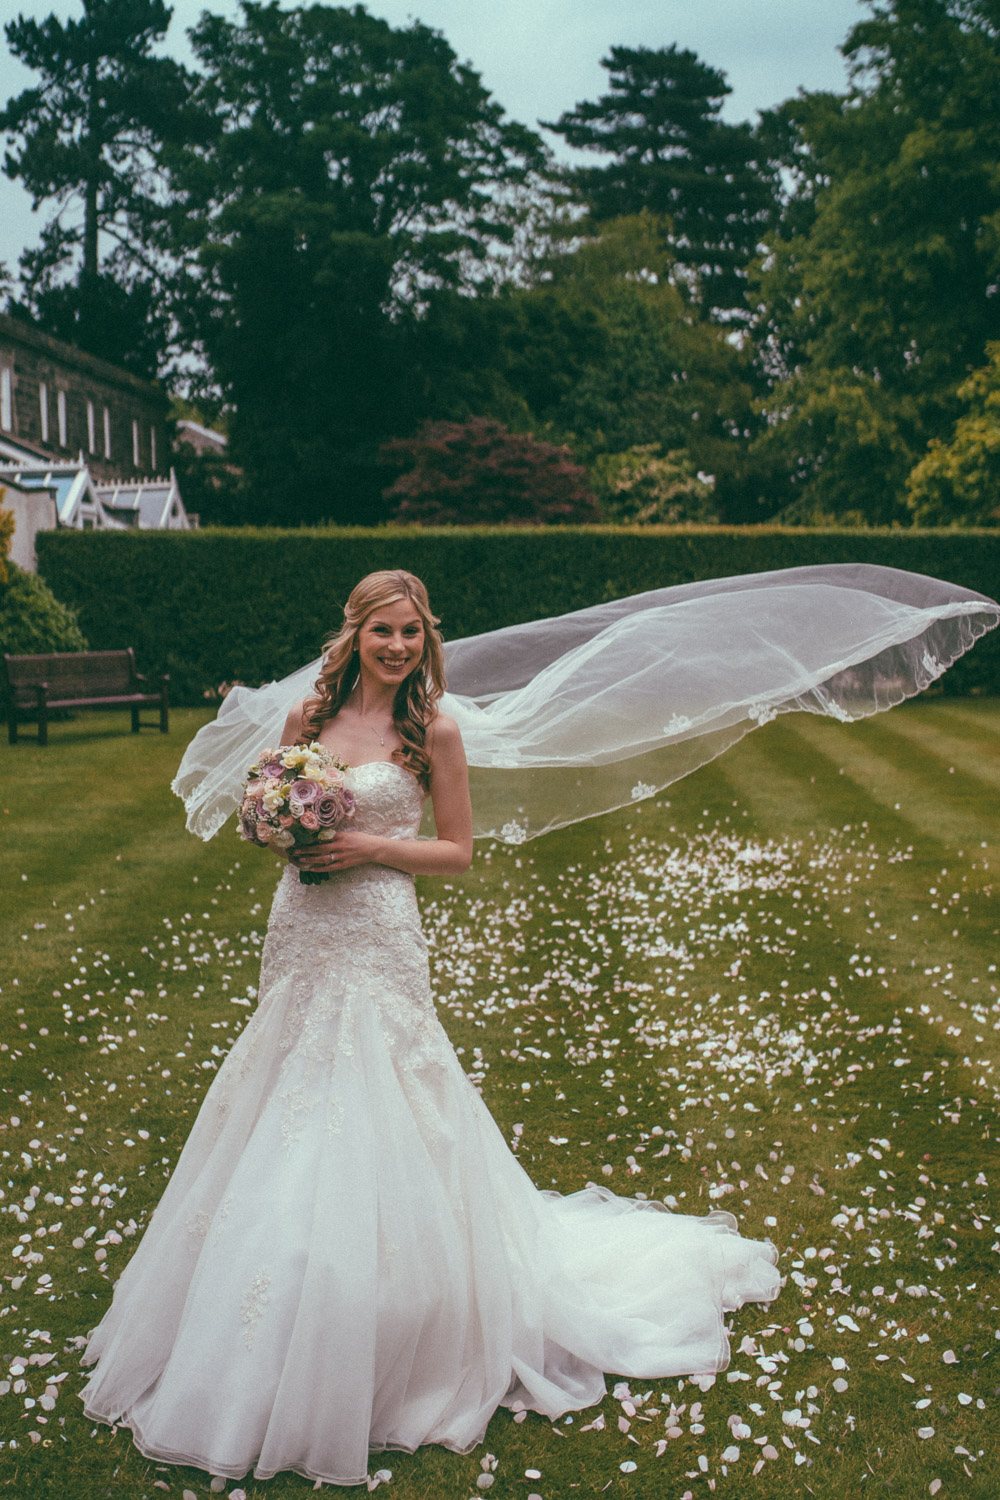 Wedding Day Bridal Portrait by Chris Deller Photography